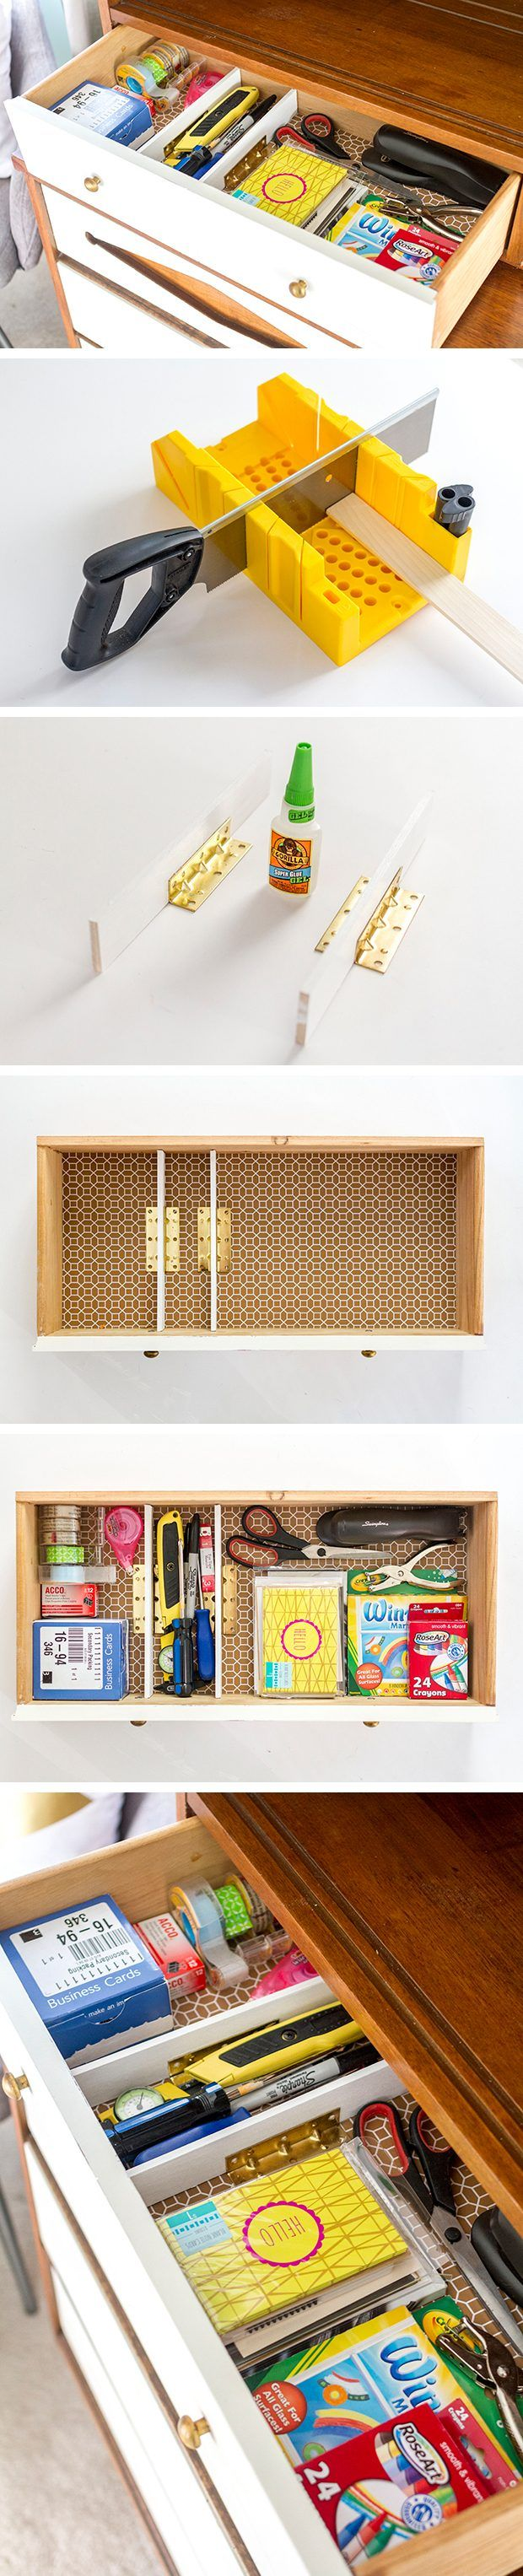 Drawer dividers are as easy as gluing